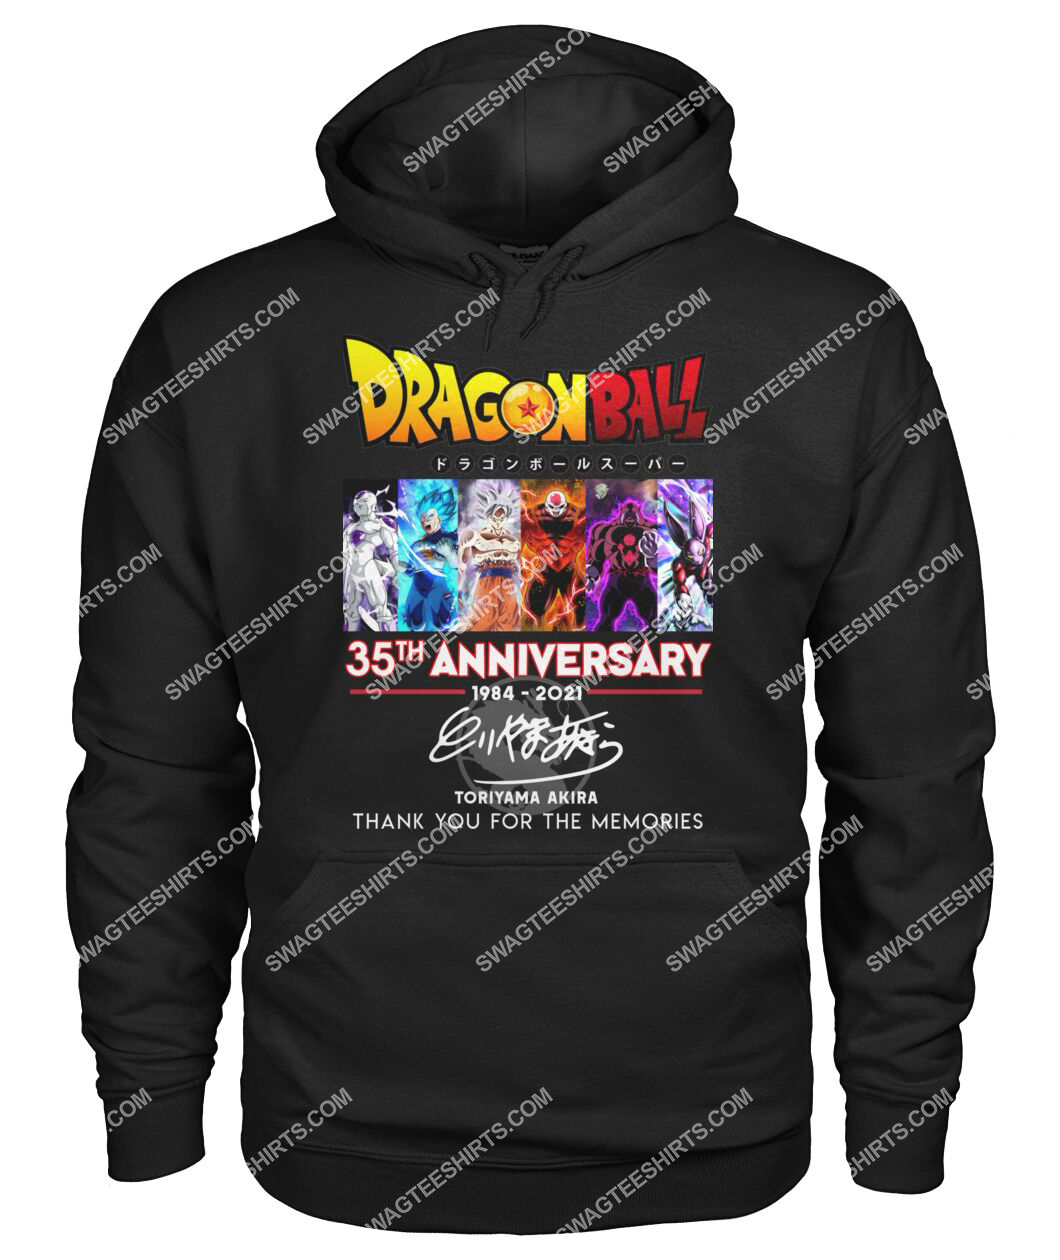 dragon ball z 35th anniversary thank you for memories signatures hoodie 1